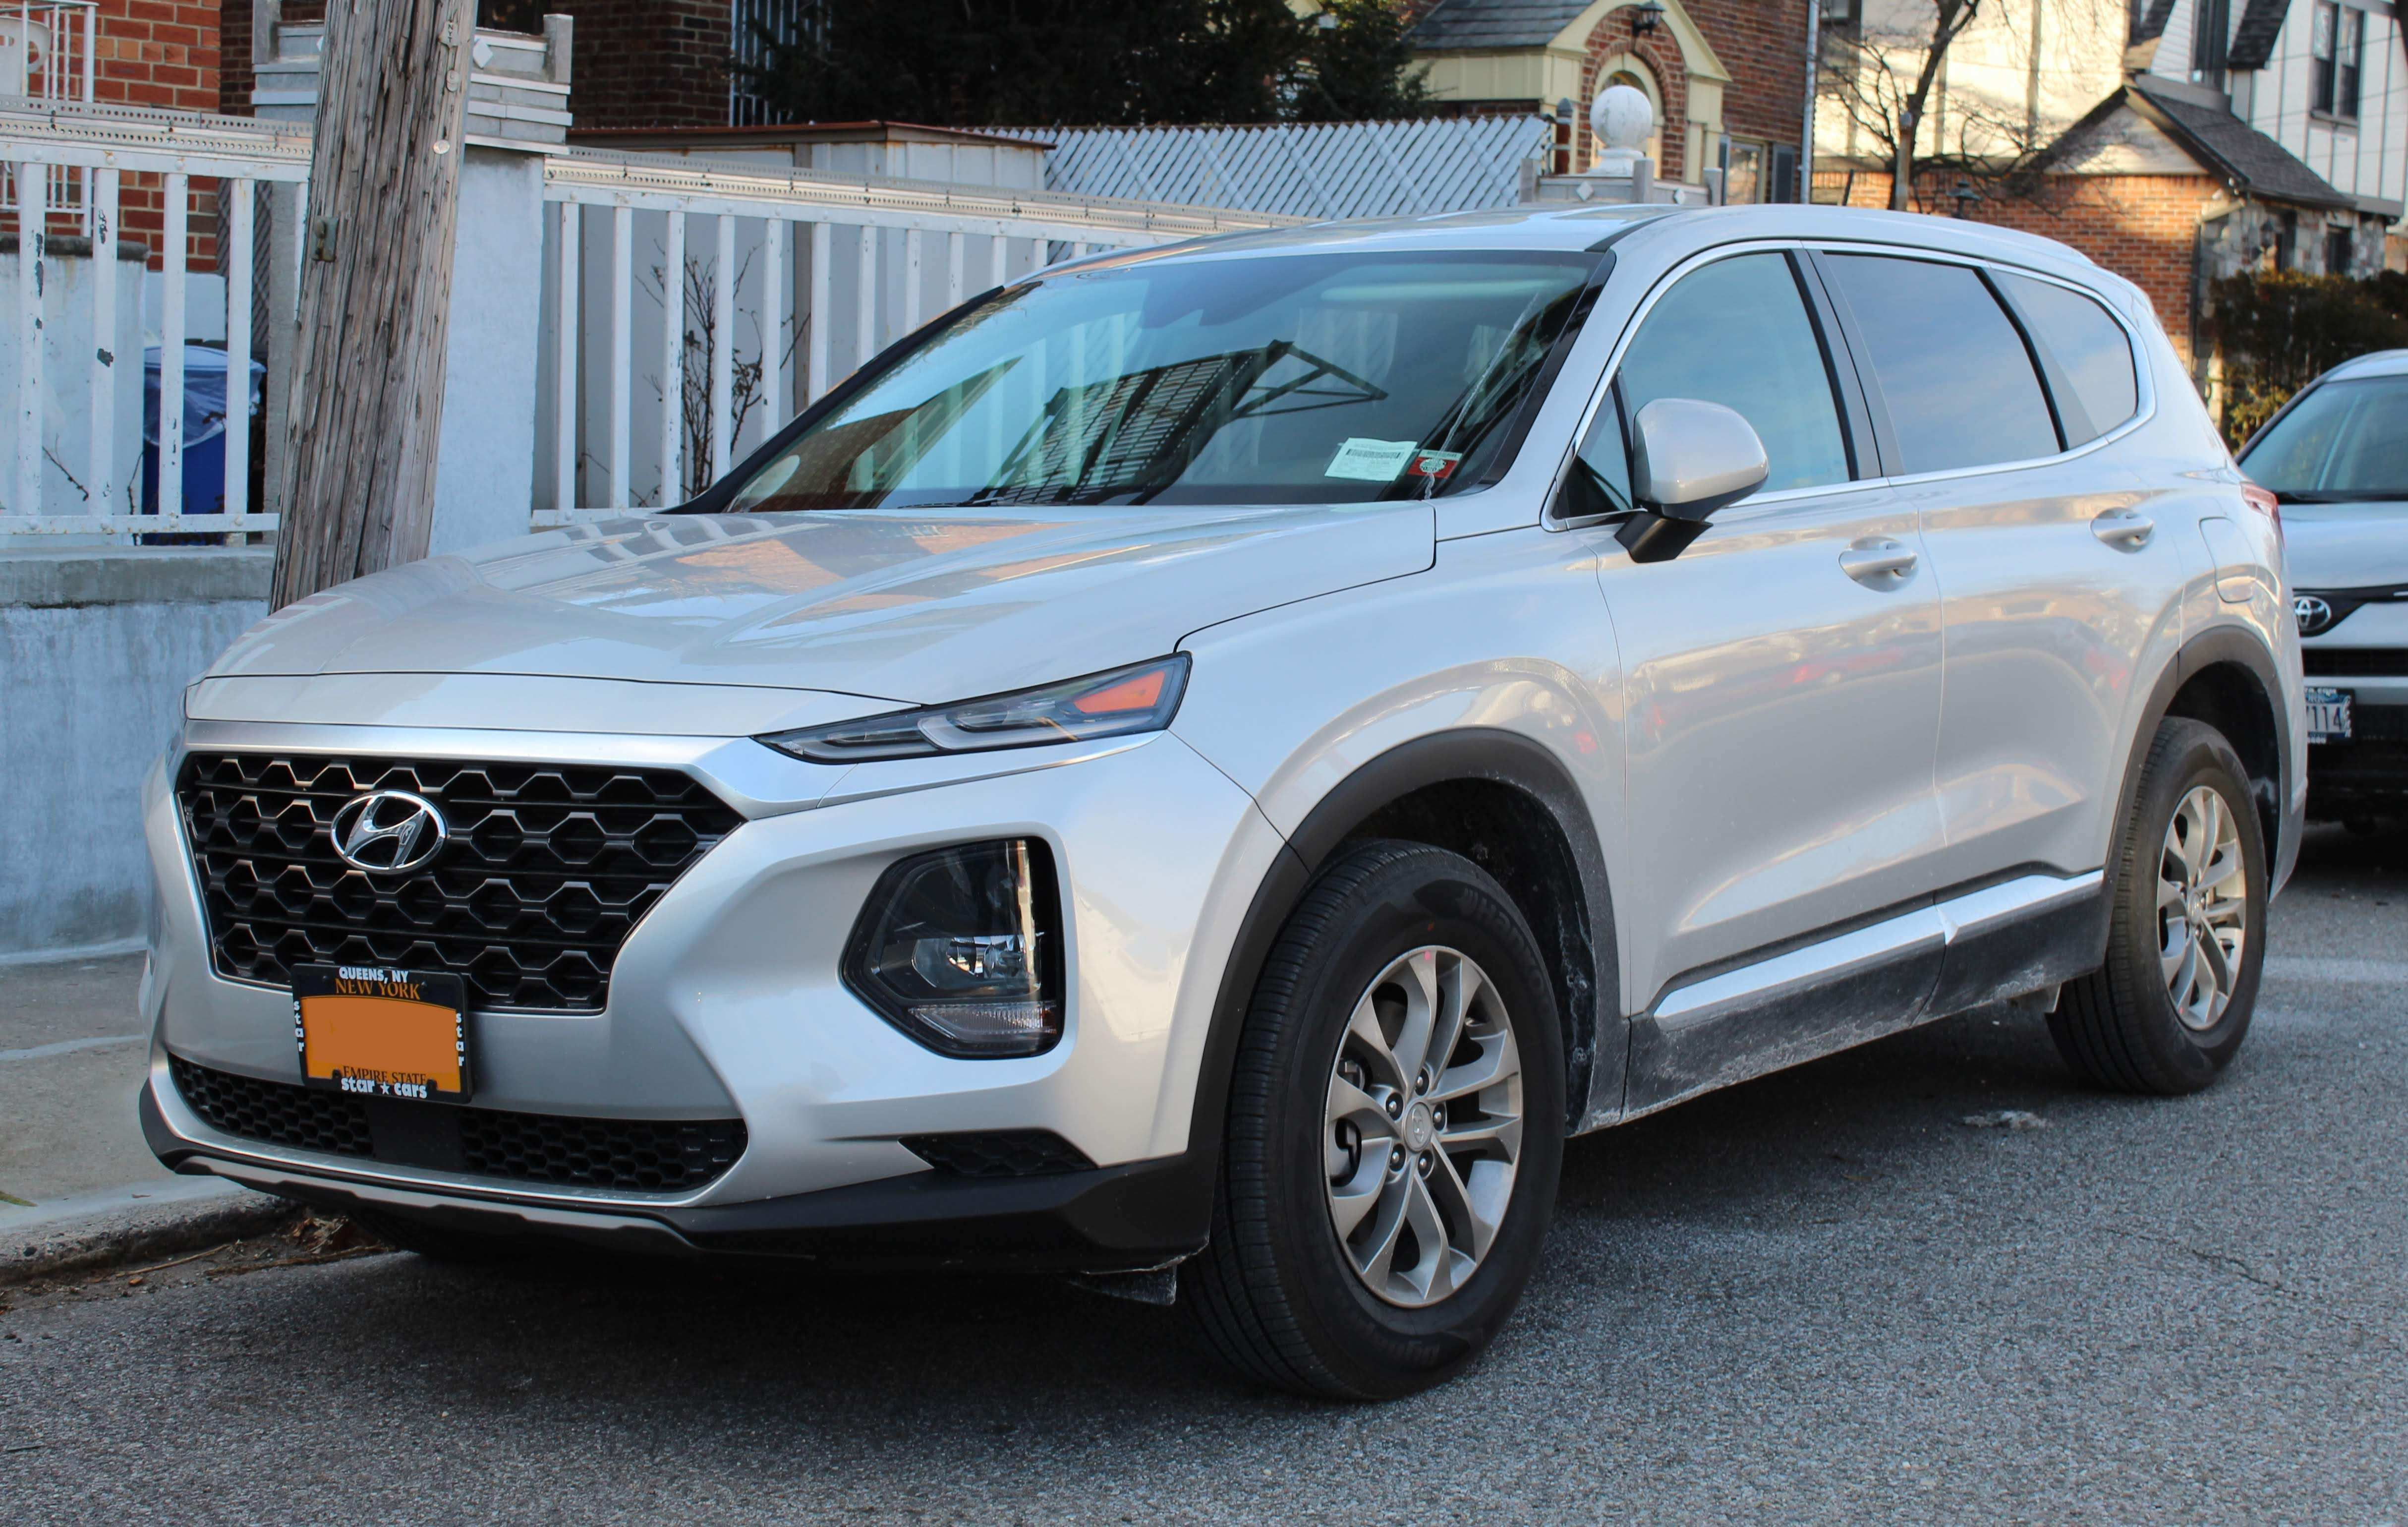 50 A The Santa Fe Kia 2019 Rumors Interior